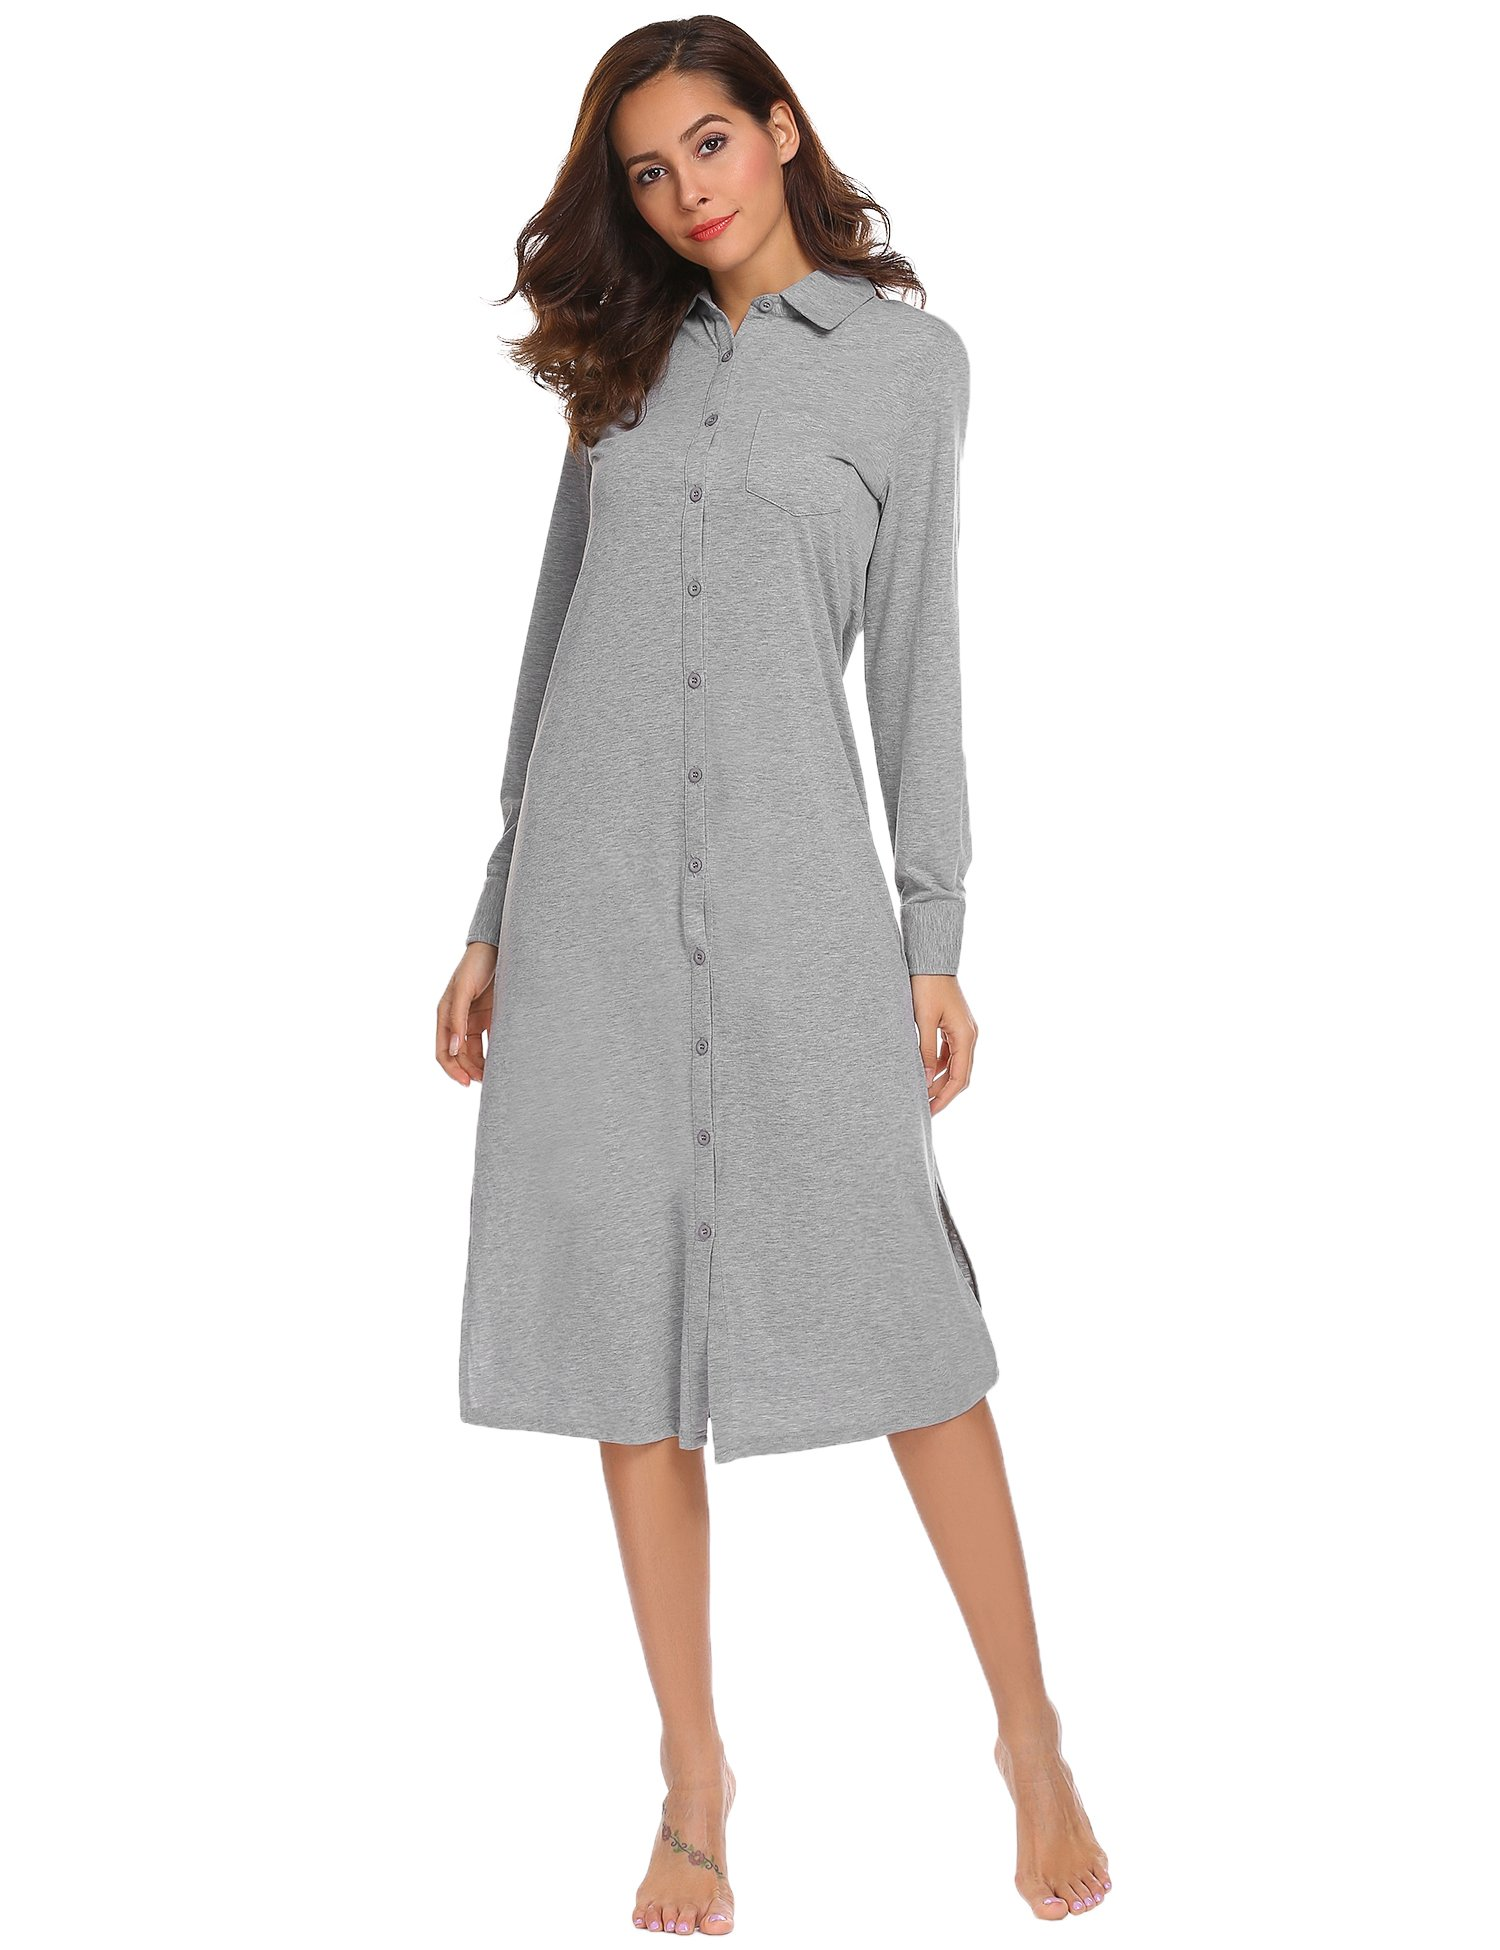 Ekouaer Womens 1 Piece Long Sleeve Nightgown Pajama Top Buttom Down Sleep Shirt Dress S-XXL